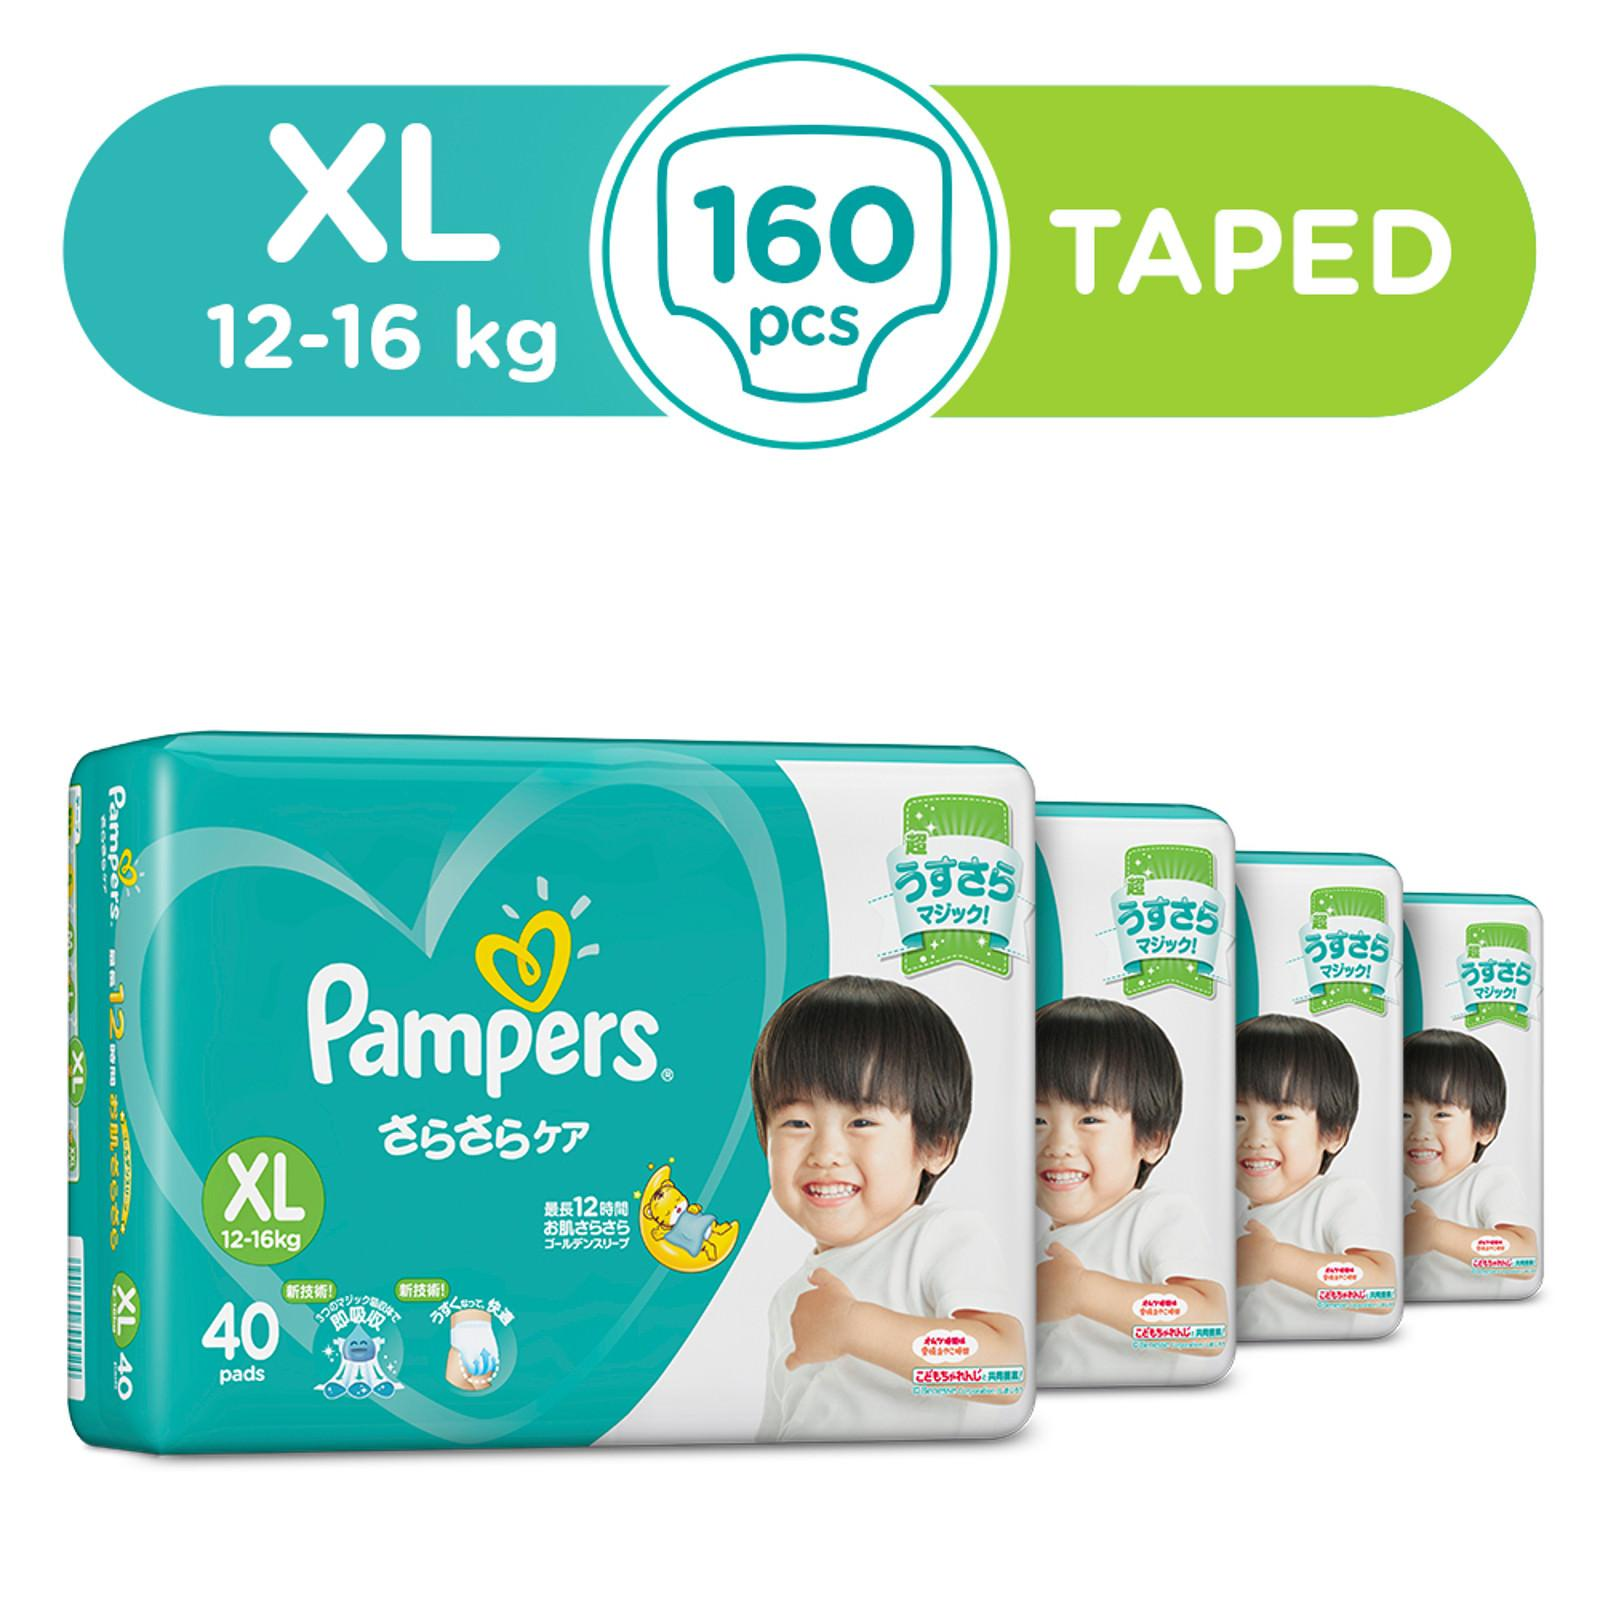 Buy Pampers Baby Dry Diapers Xl 40S 12 16Kg X 4 Packs Online Singapore